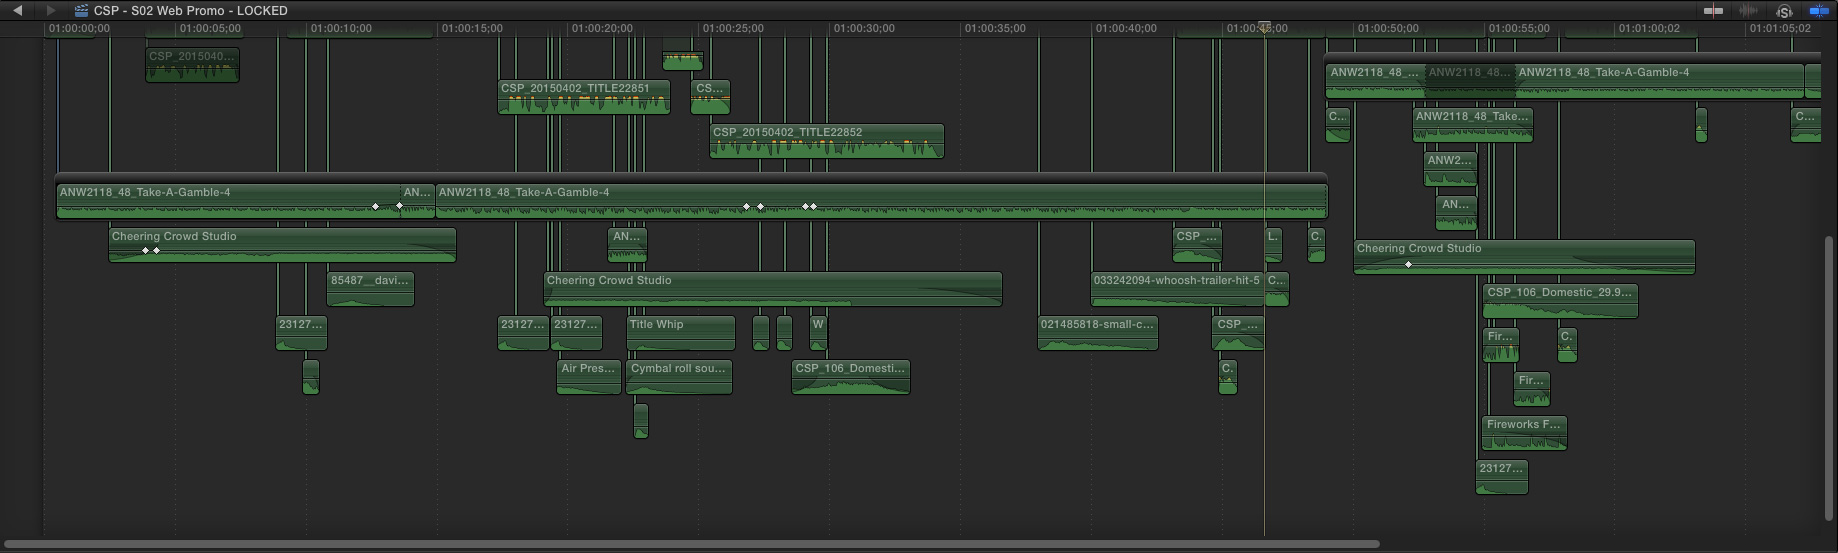 Look at all those clips! It's cluttered. Colour coded roles would make it much less overwhelming.